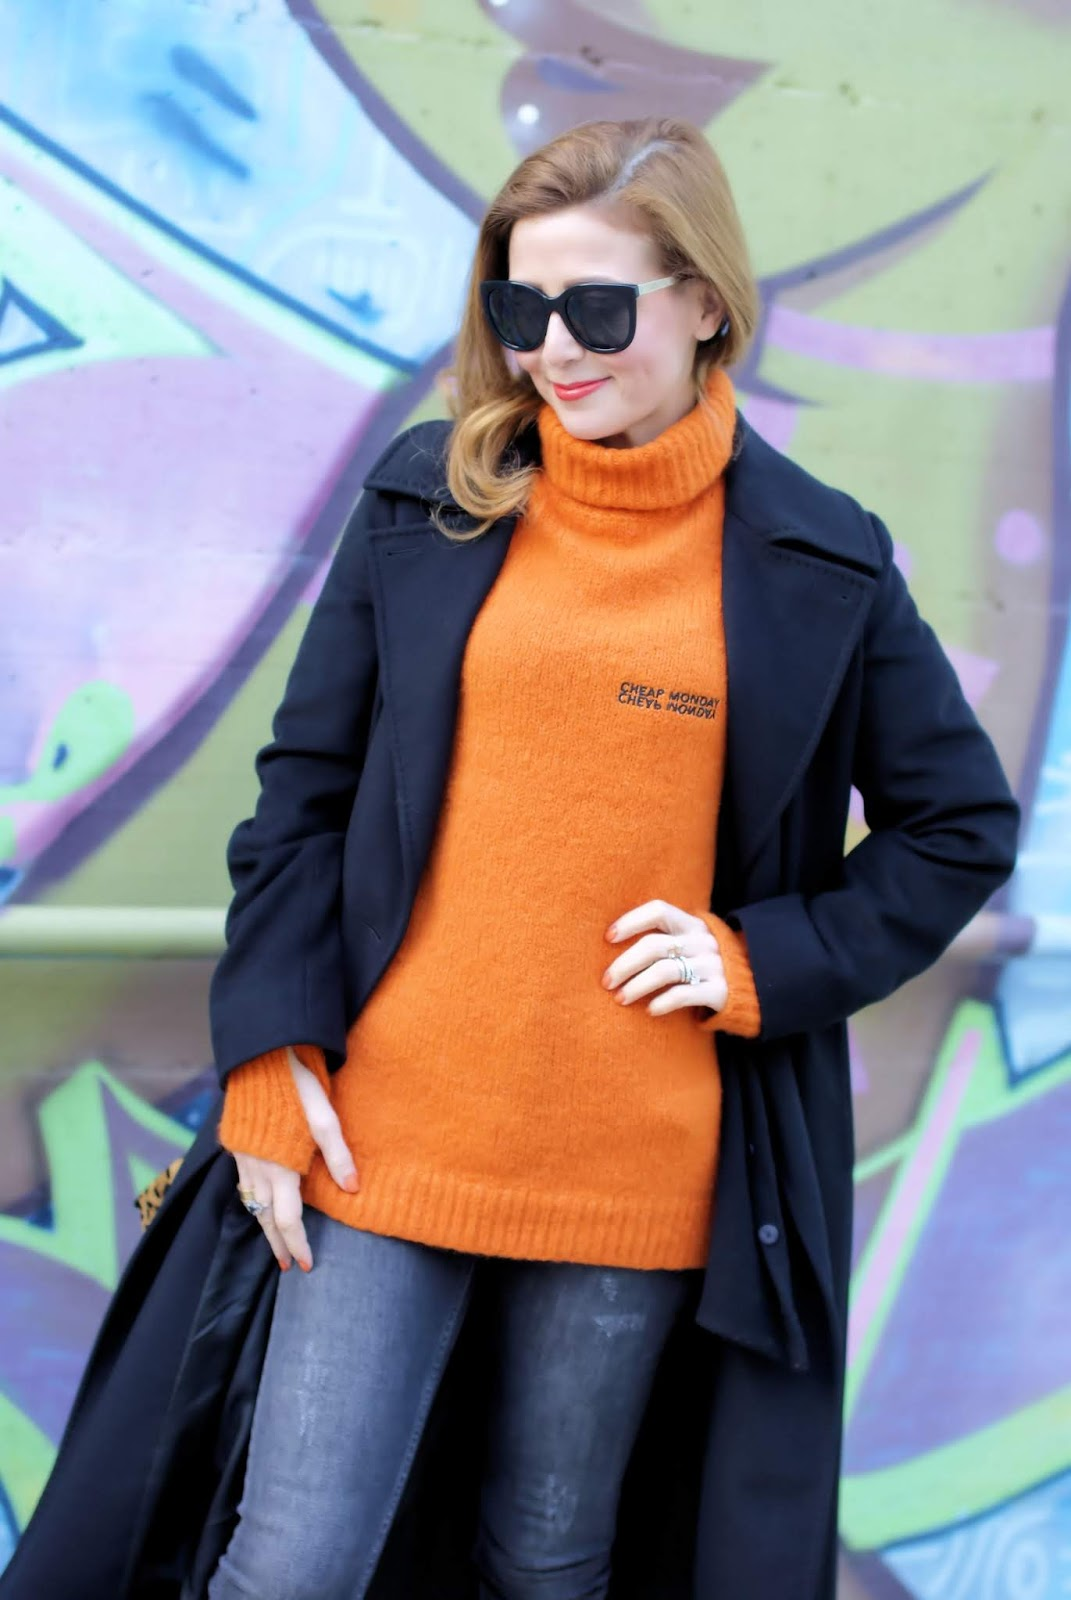 Orange is the new black street style look on Fashion and Cookies fashion blog, fashion blogger style